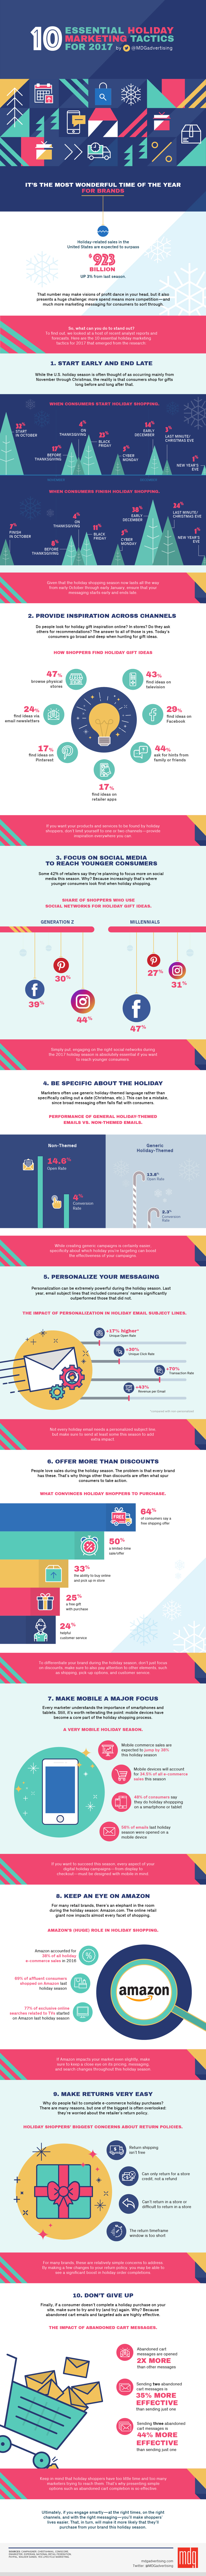 10 Essential Marketing Tactics for the Holiday Season - Infographic